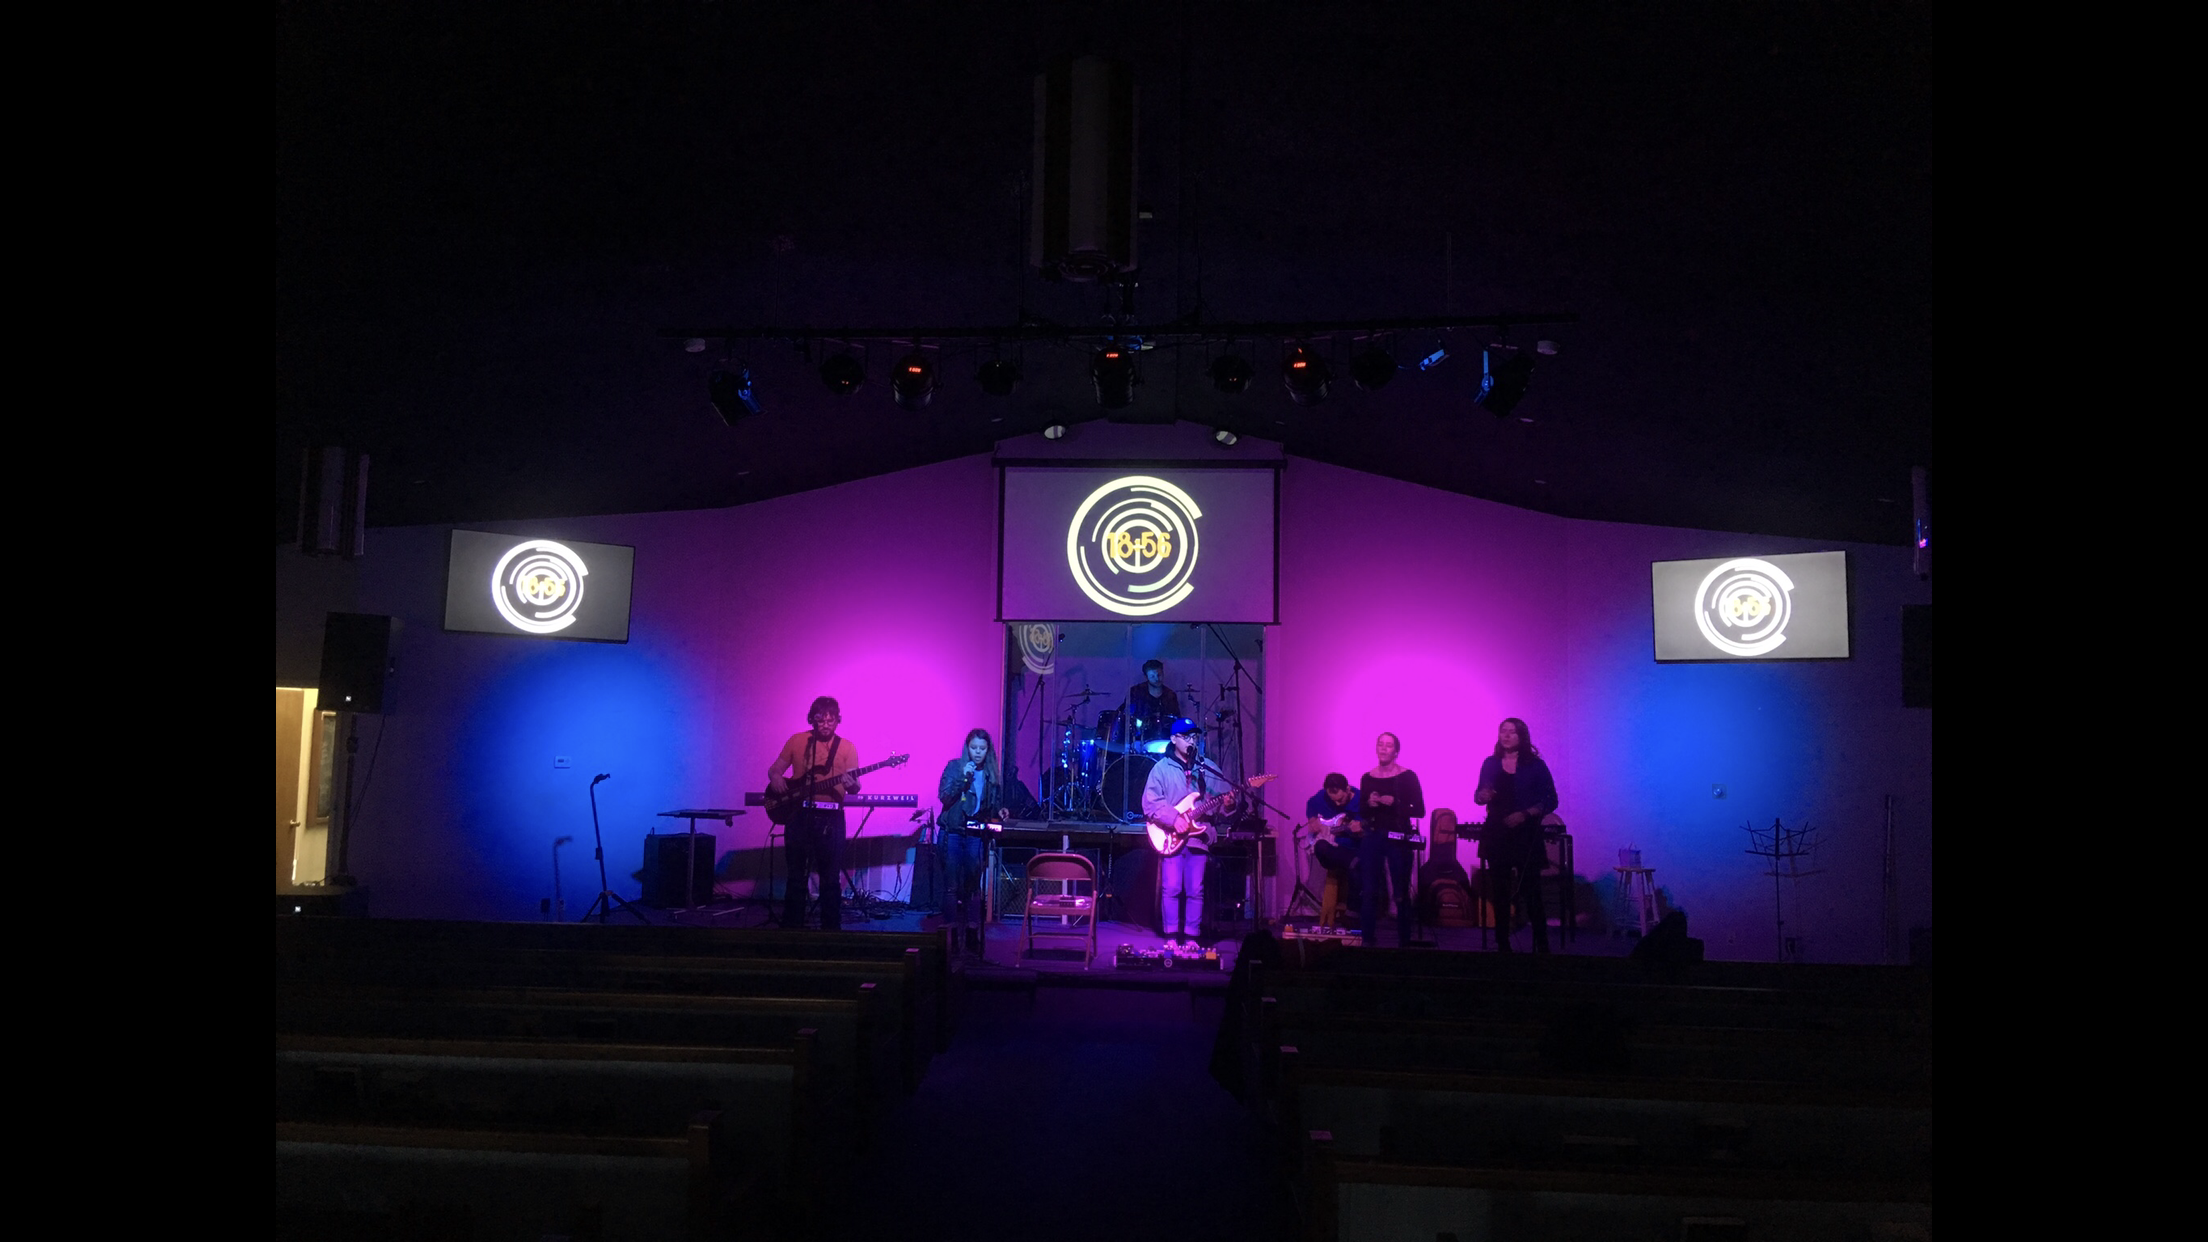 Oasis church NJ band